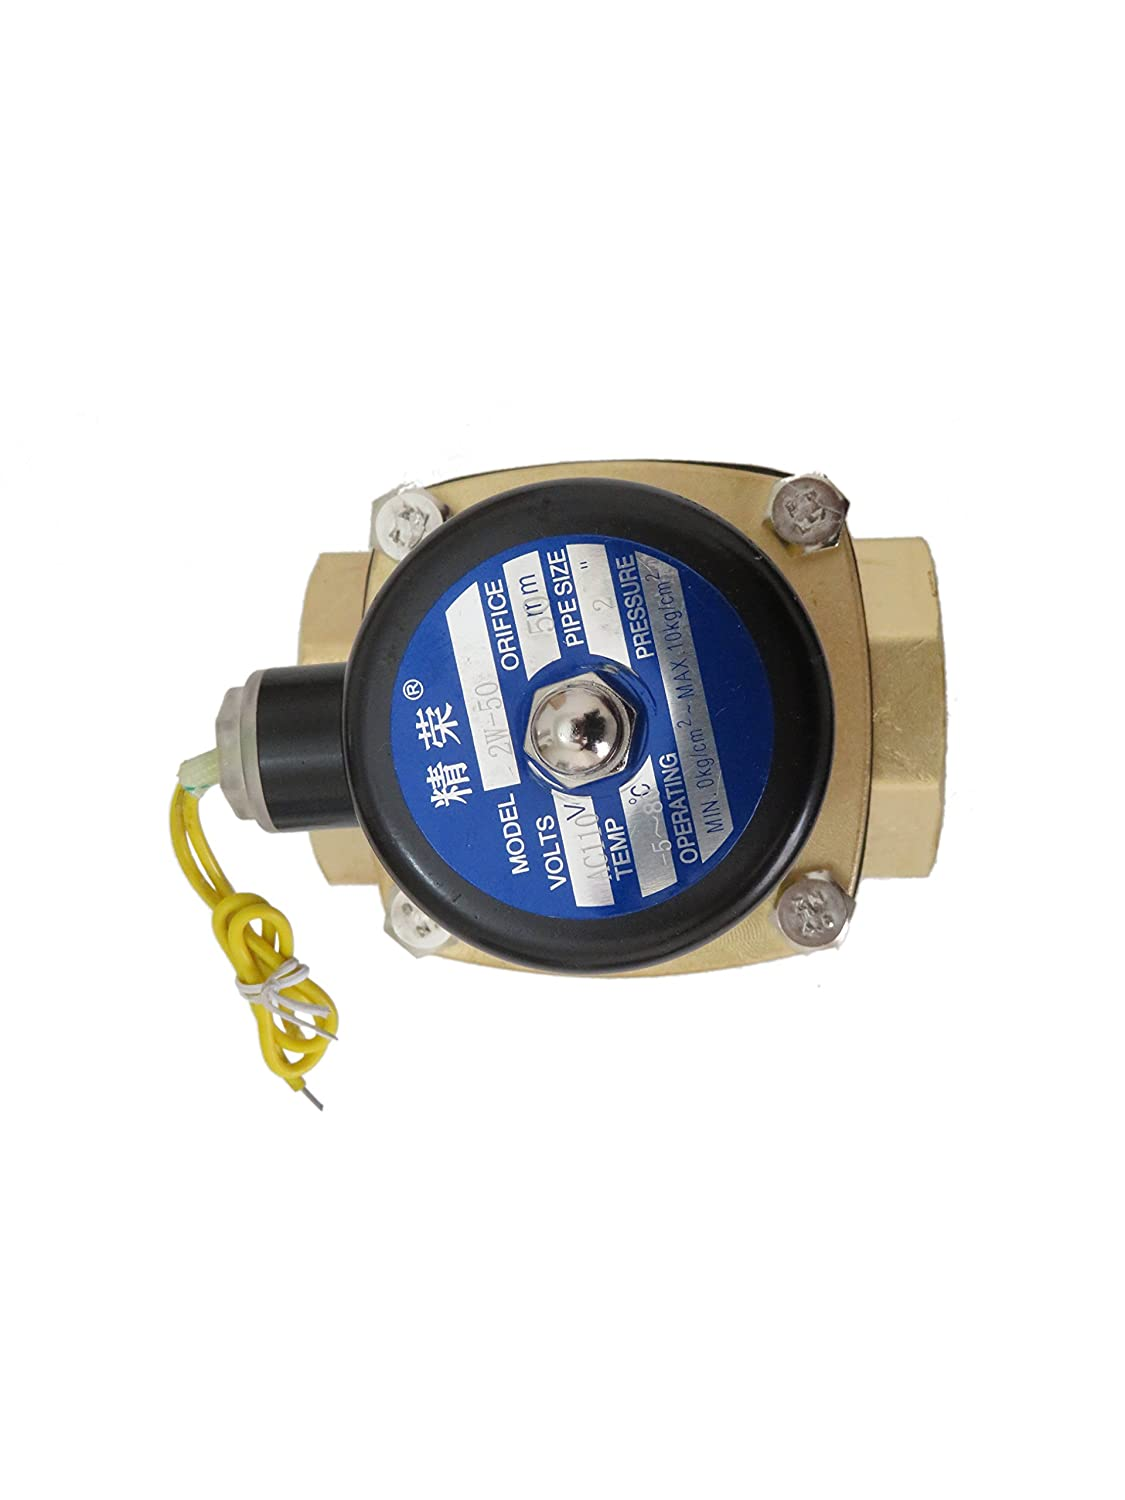 1 x 1-1//4 AQUATROL 560FE-MA80 Safety Valve for Series 560 80 psi 1 x 1-1//4